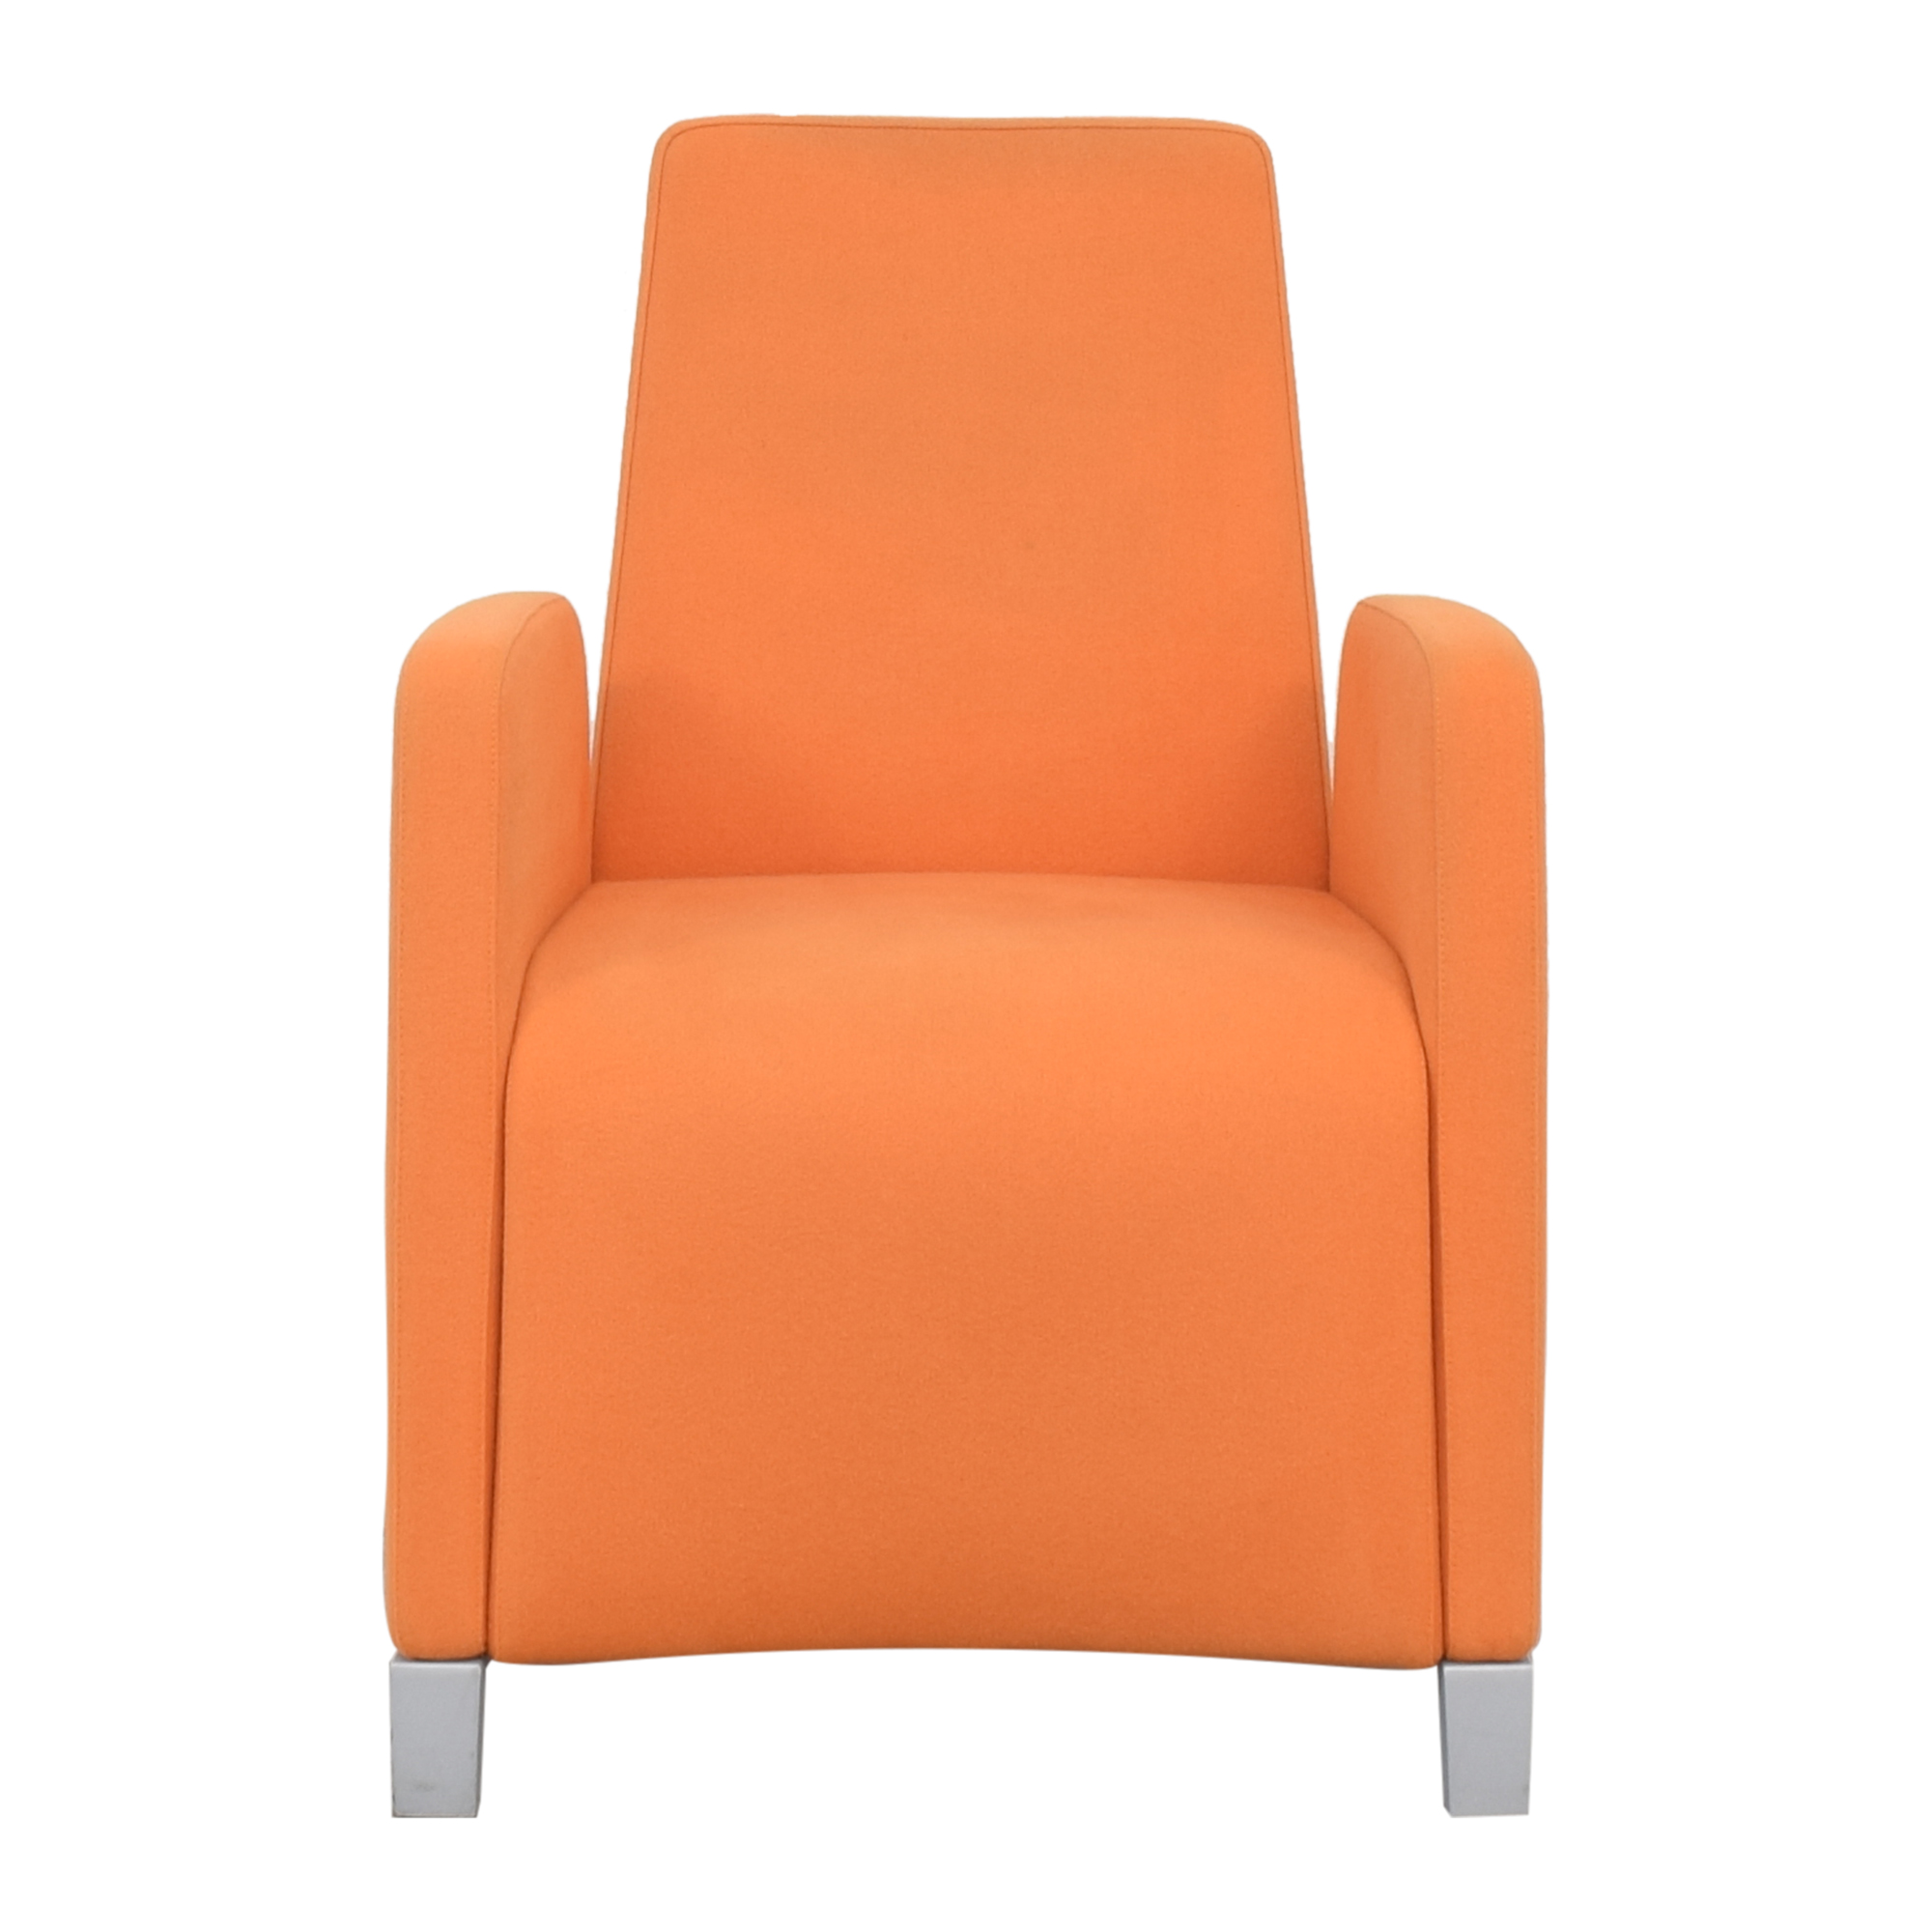 Baleri Italia Baleri Italia Tato Orange Chair Accent Chairs